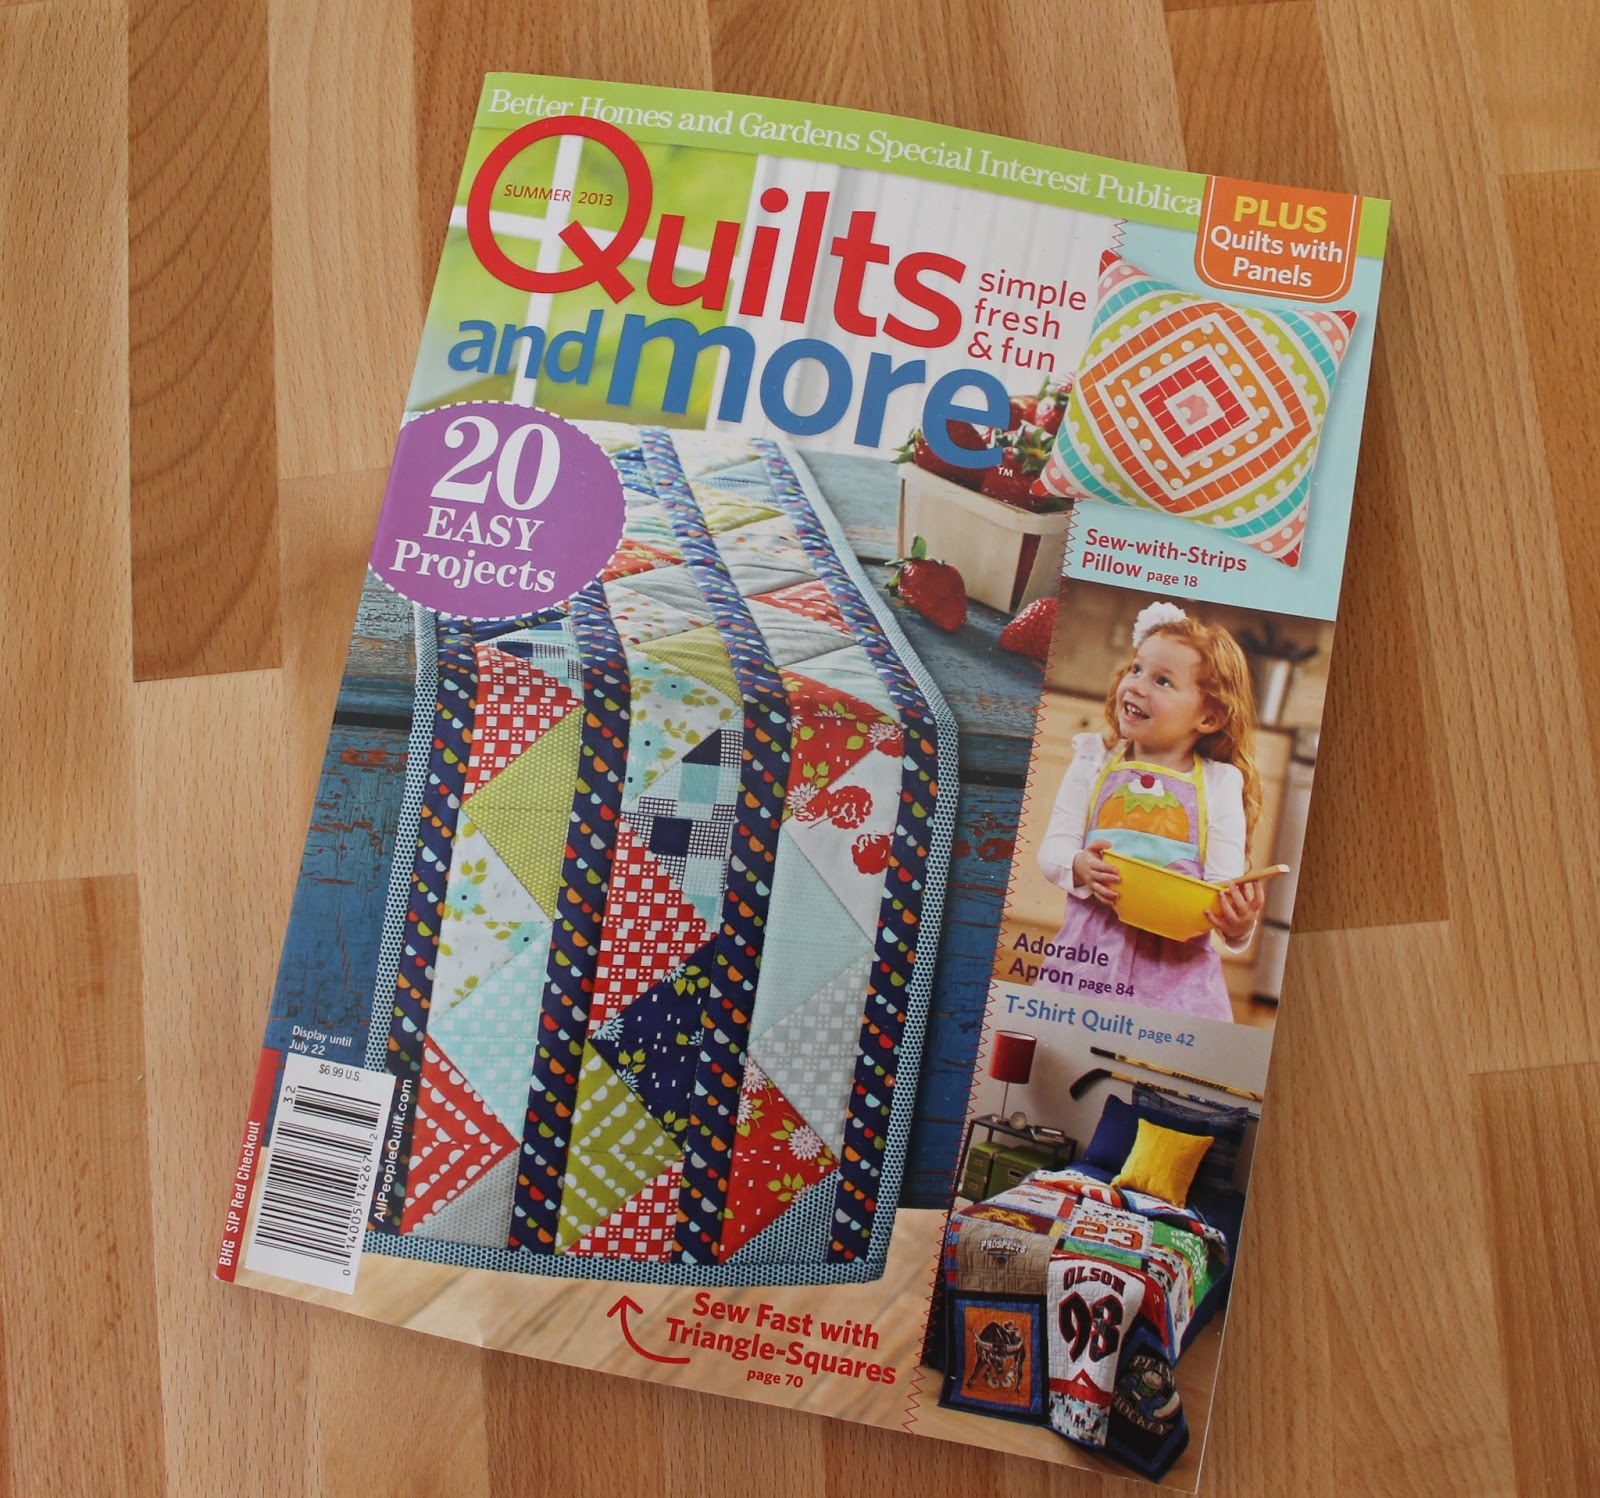 Piece N Quilt: Quilts and More - Summer 2013